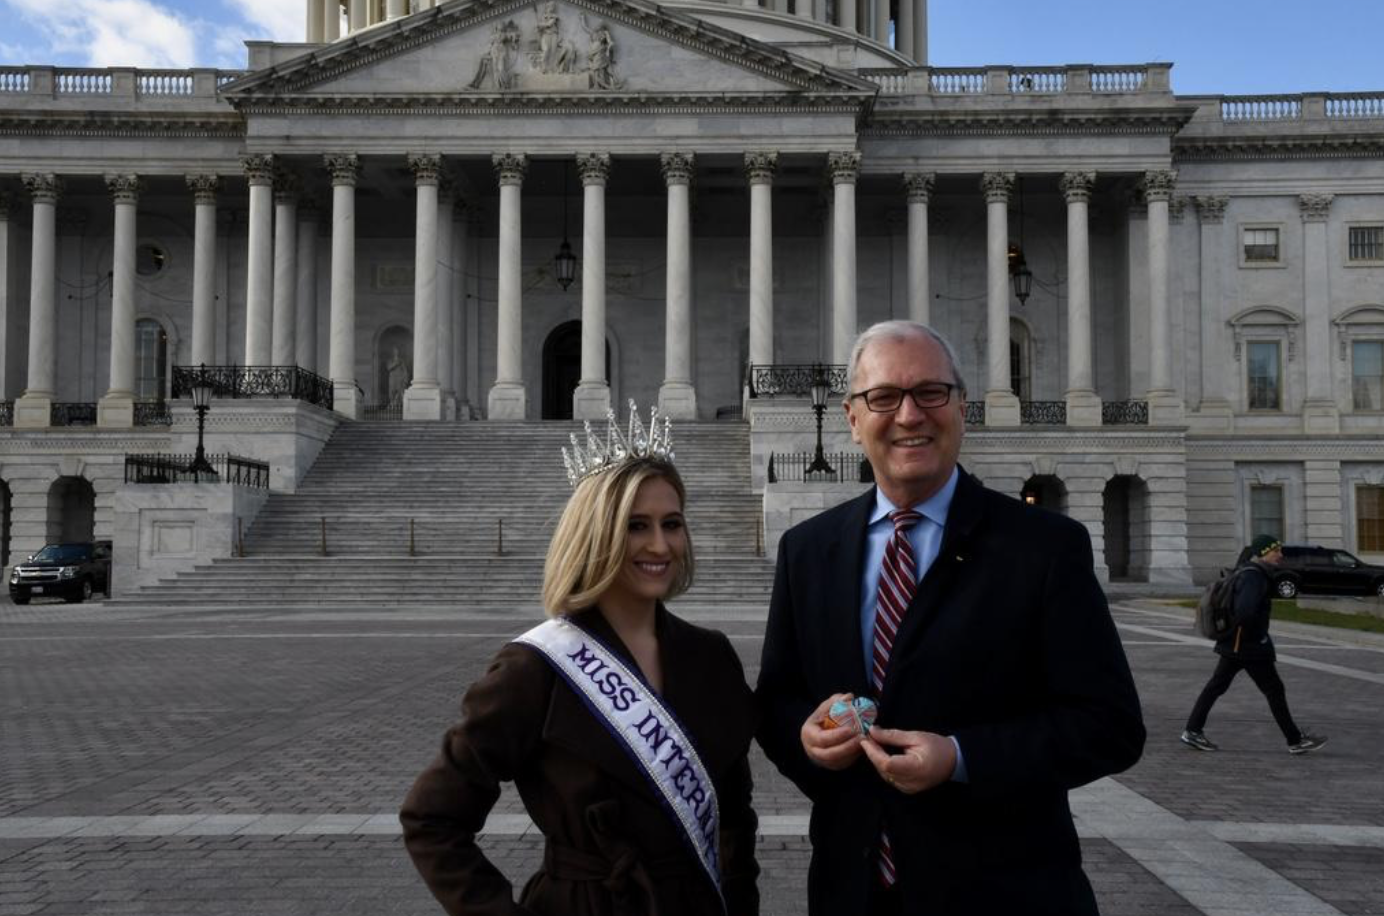 In December, I met with Senator Kevin Cramer to discuss my year as Miss International and what I do as an Ambassador for The Peyton Heart Project.